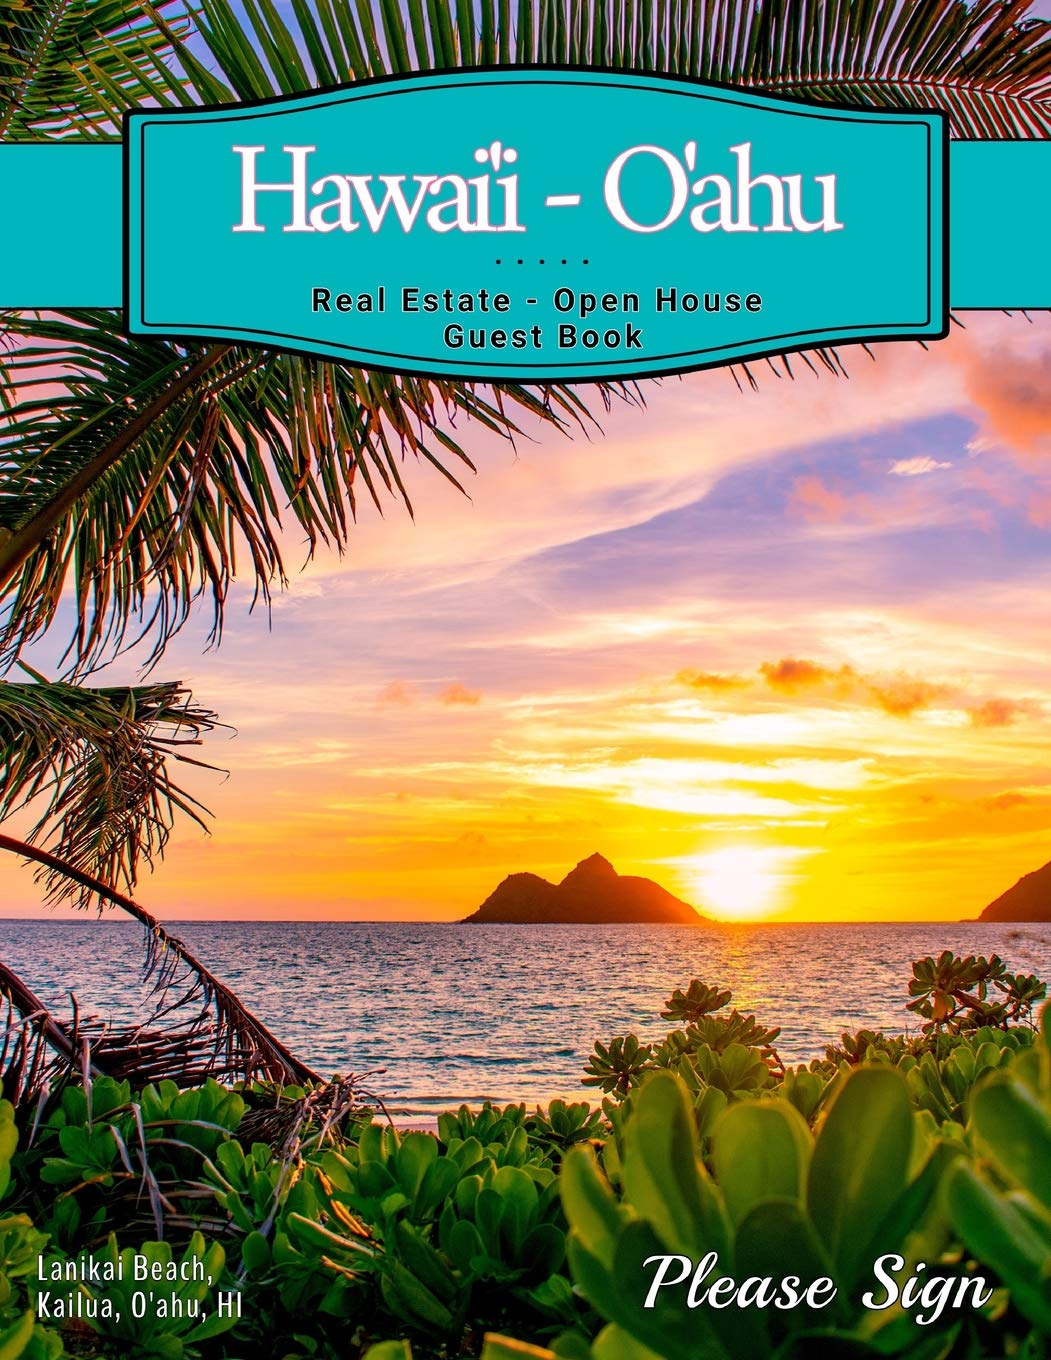 Hawaii Oahu Real Estate Open House Guest Book Spaces For